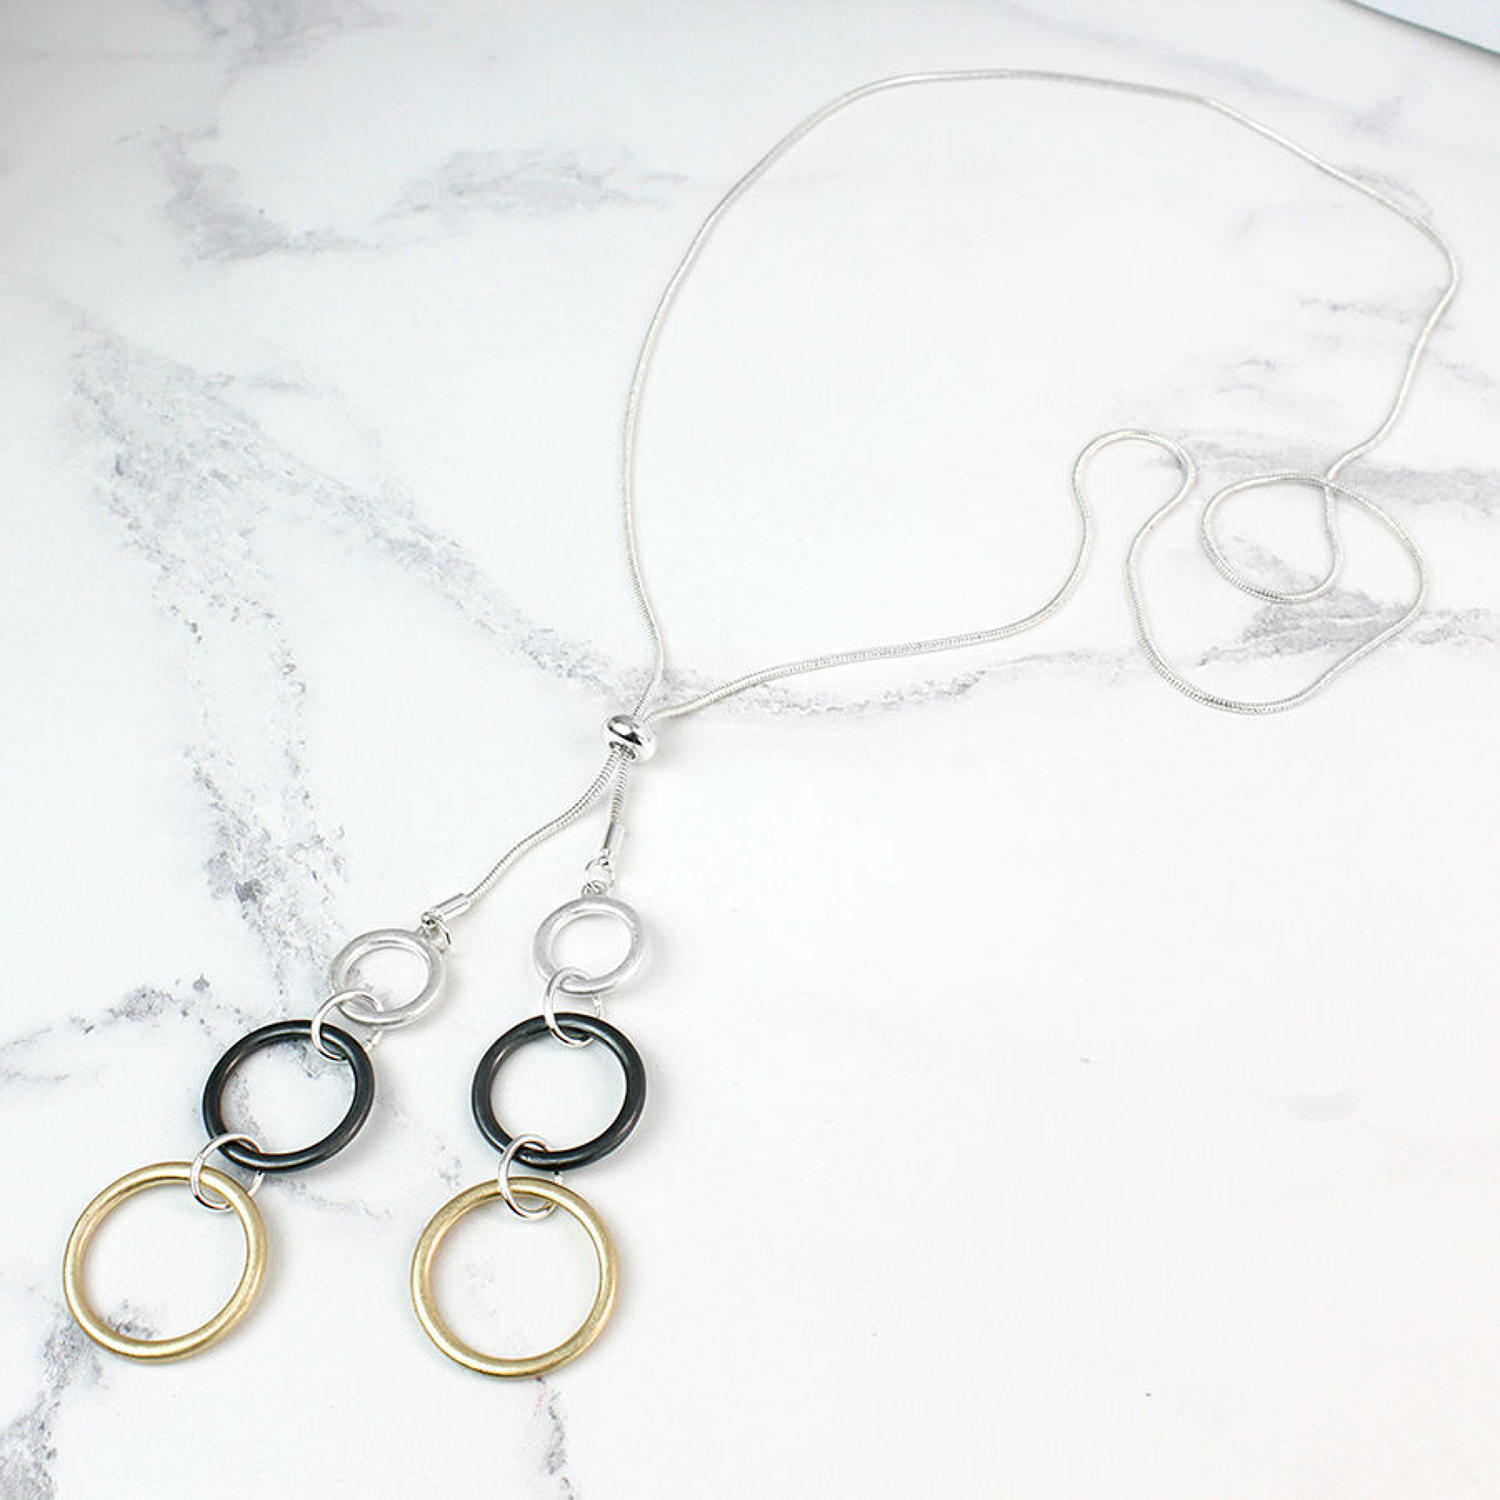 POM - Long adjustable mixed finished ring necklace